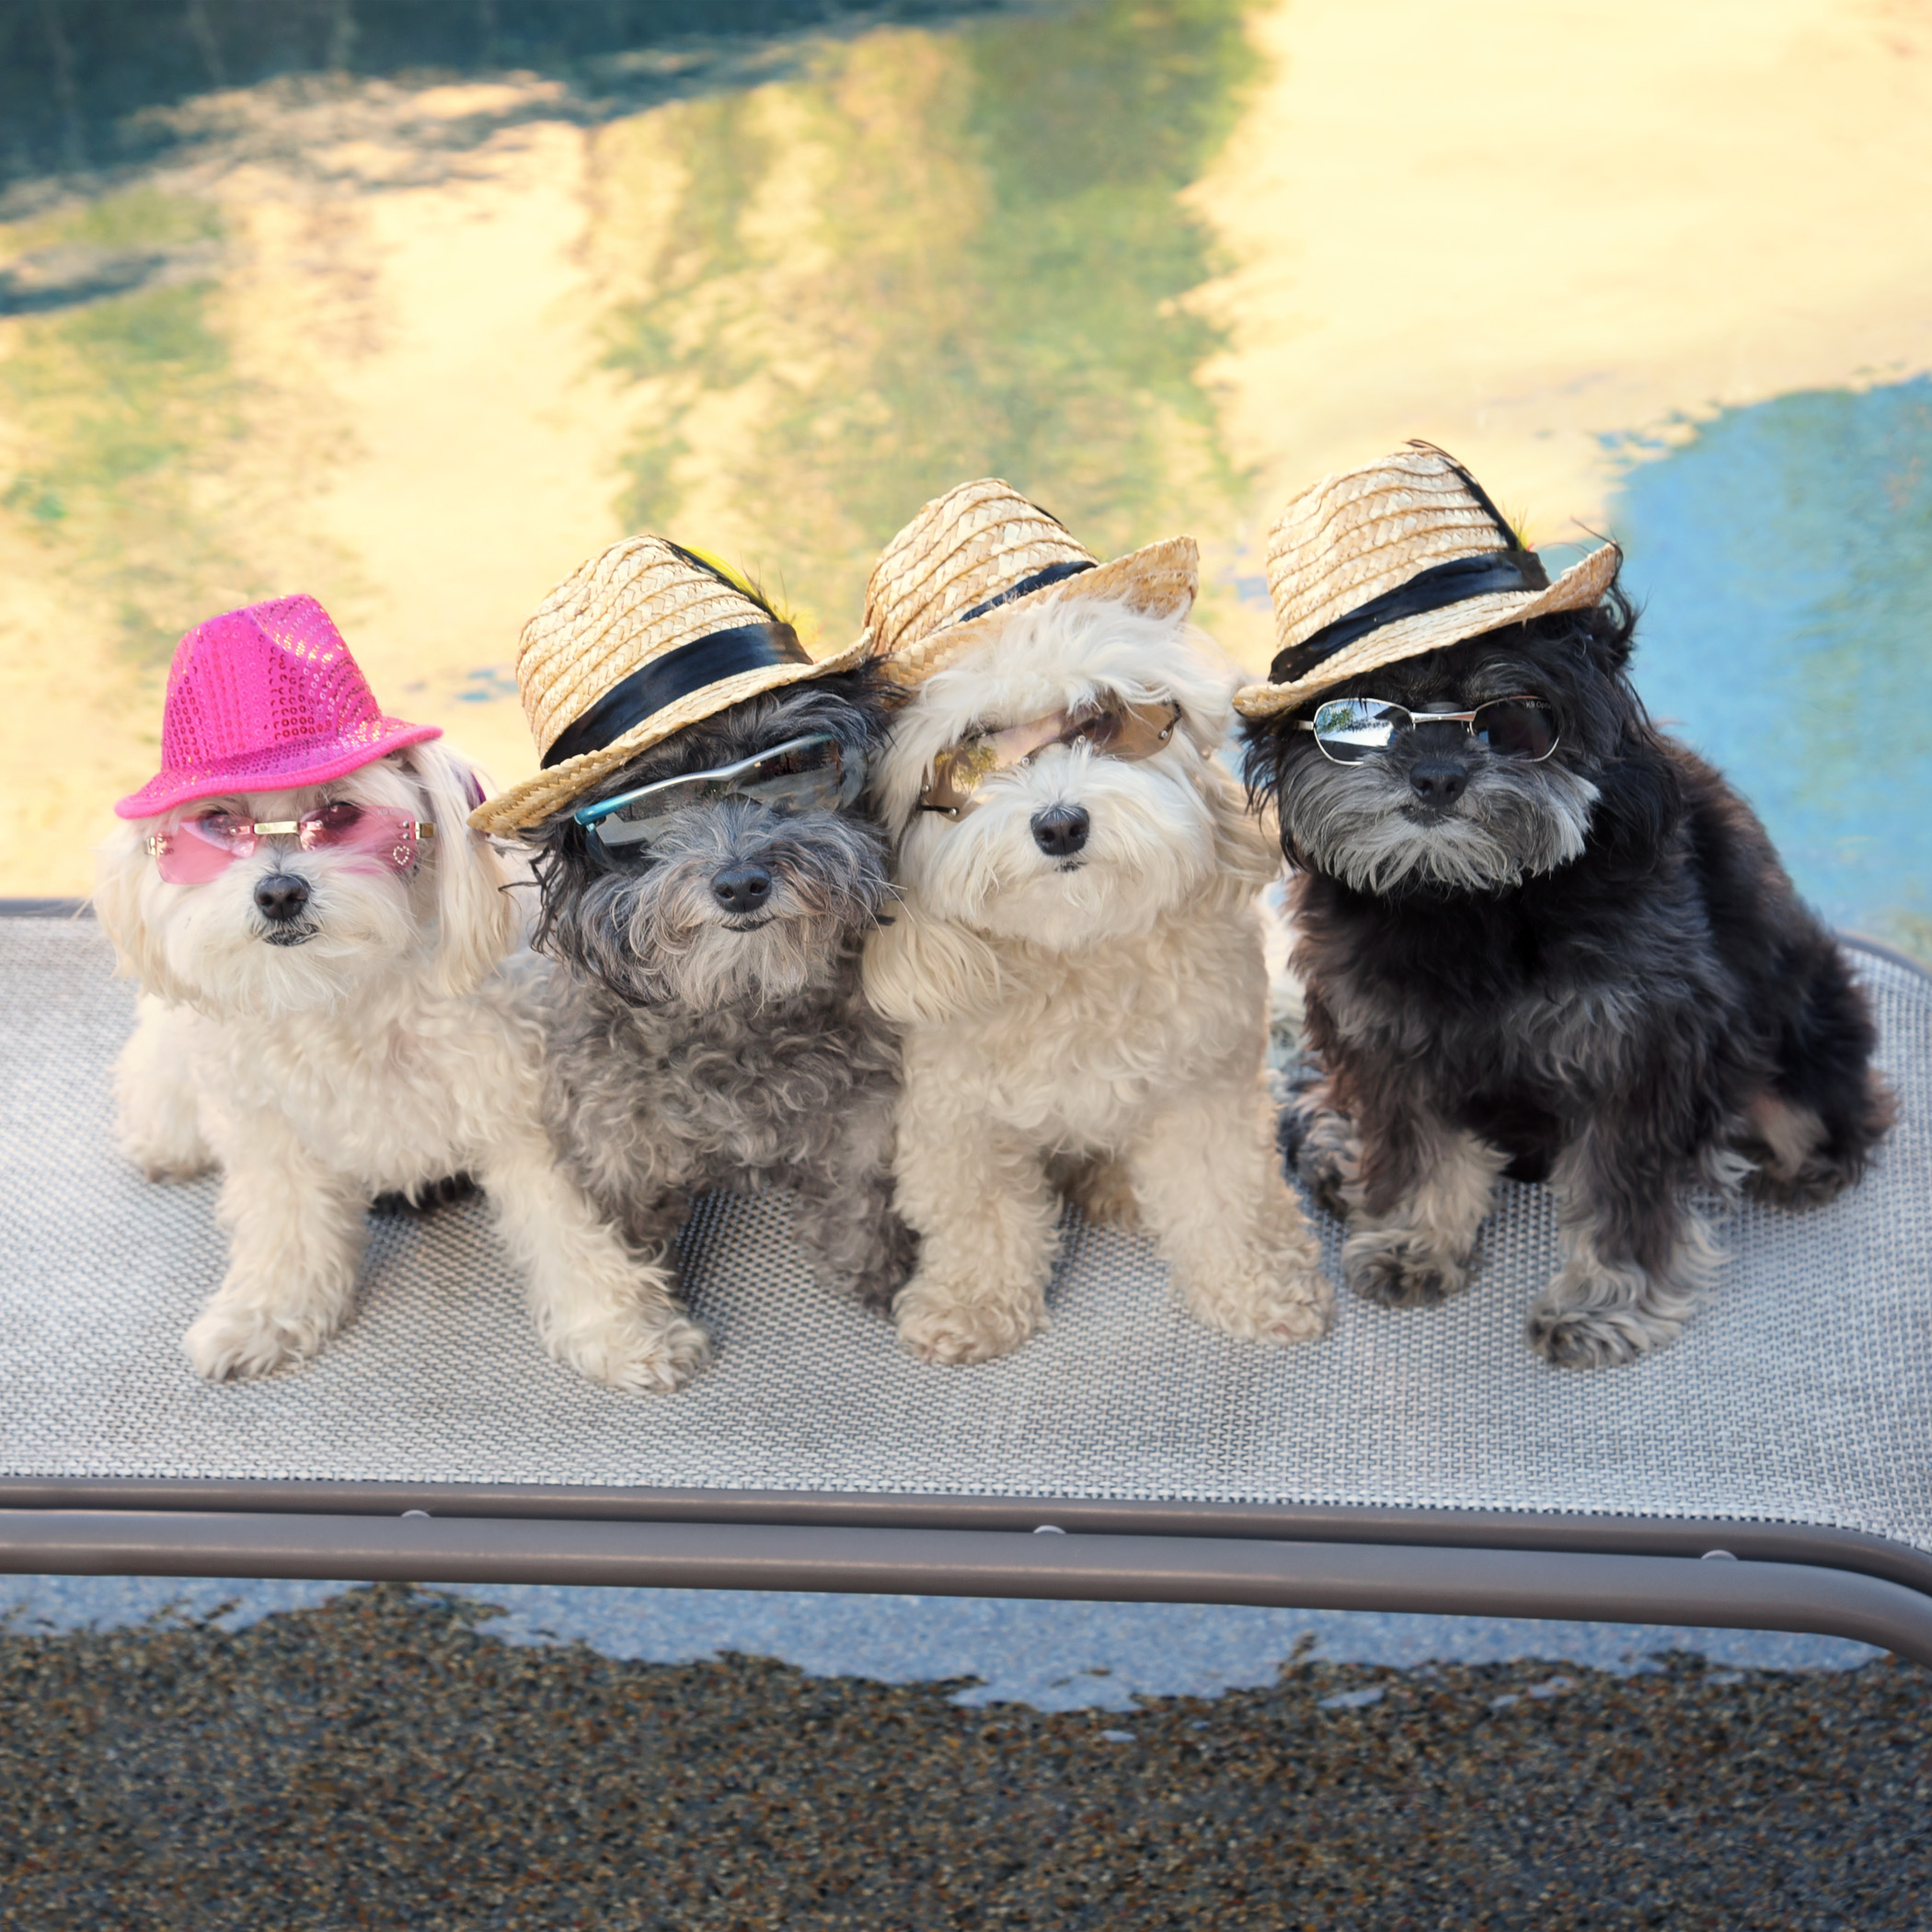 There's nothing quite like the feeling of coming home! If you need us, we'll be out here chilling by the pool! Bring us those pina coladas, Mom!